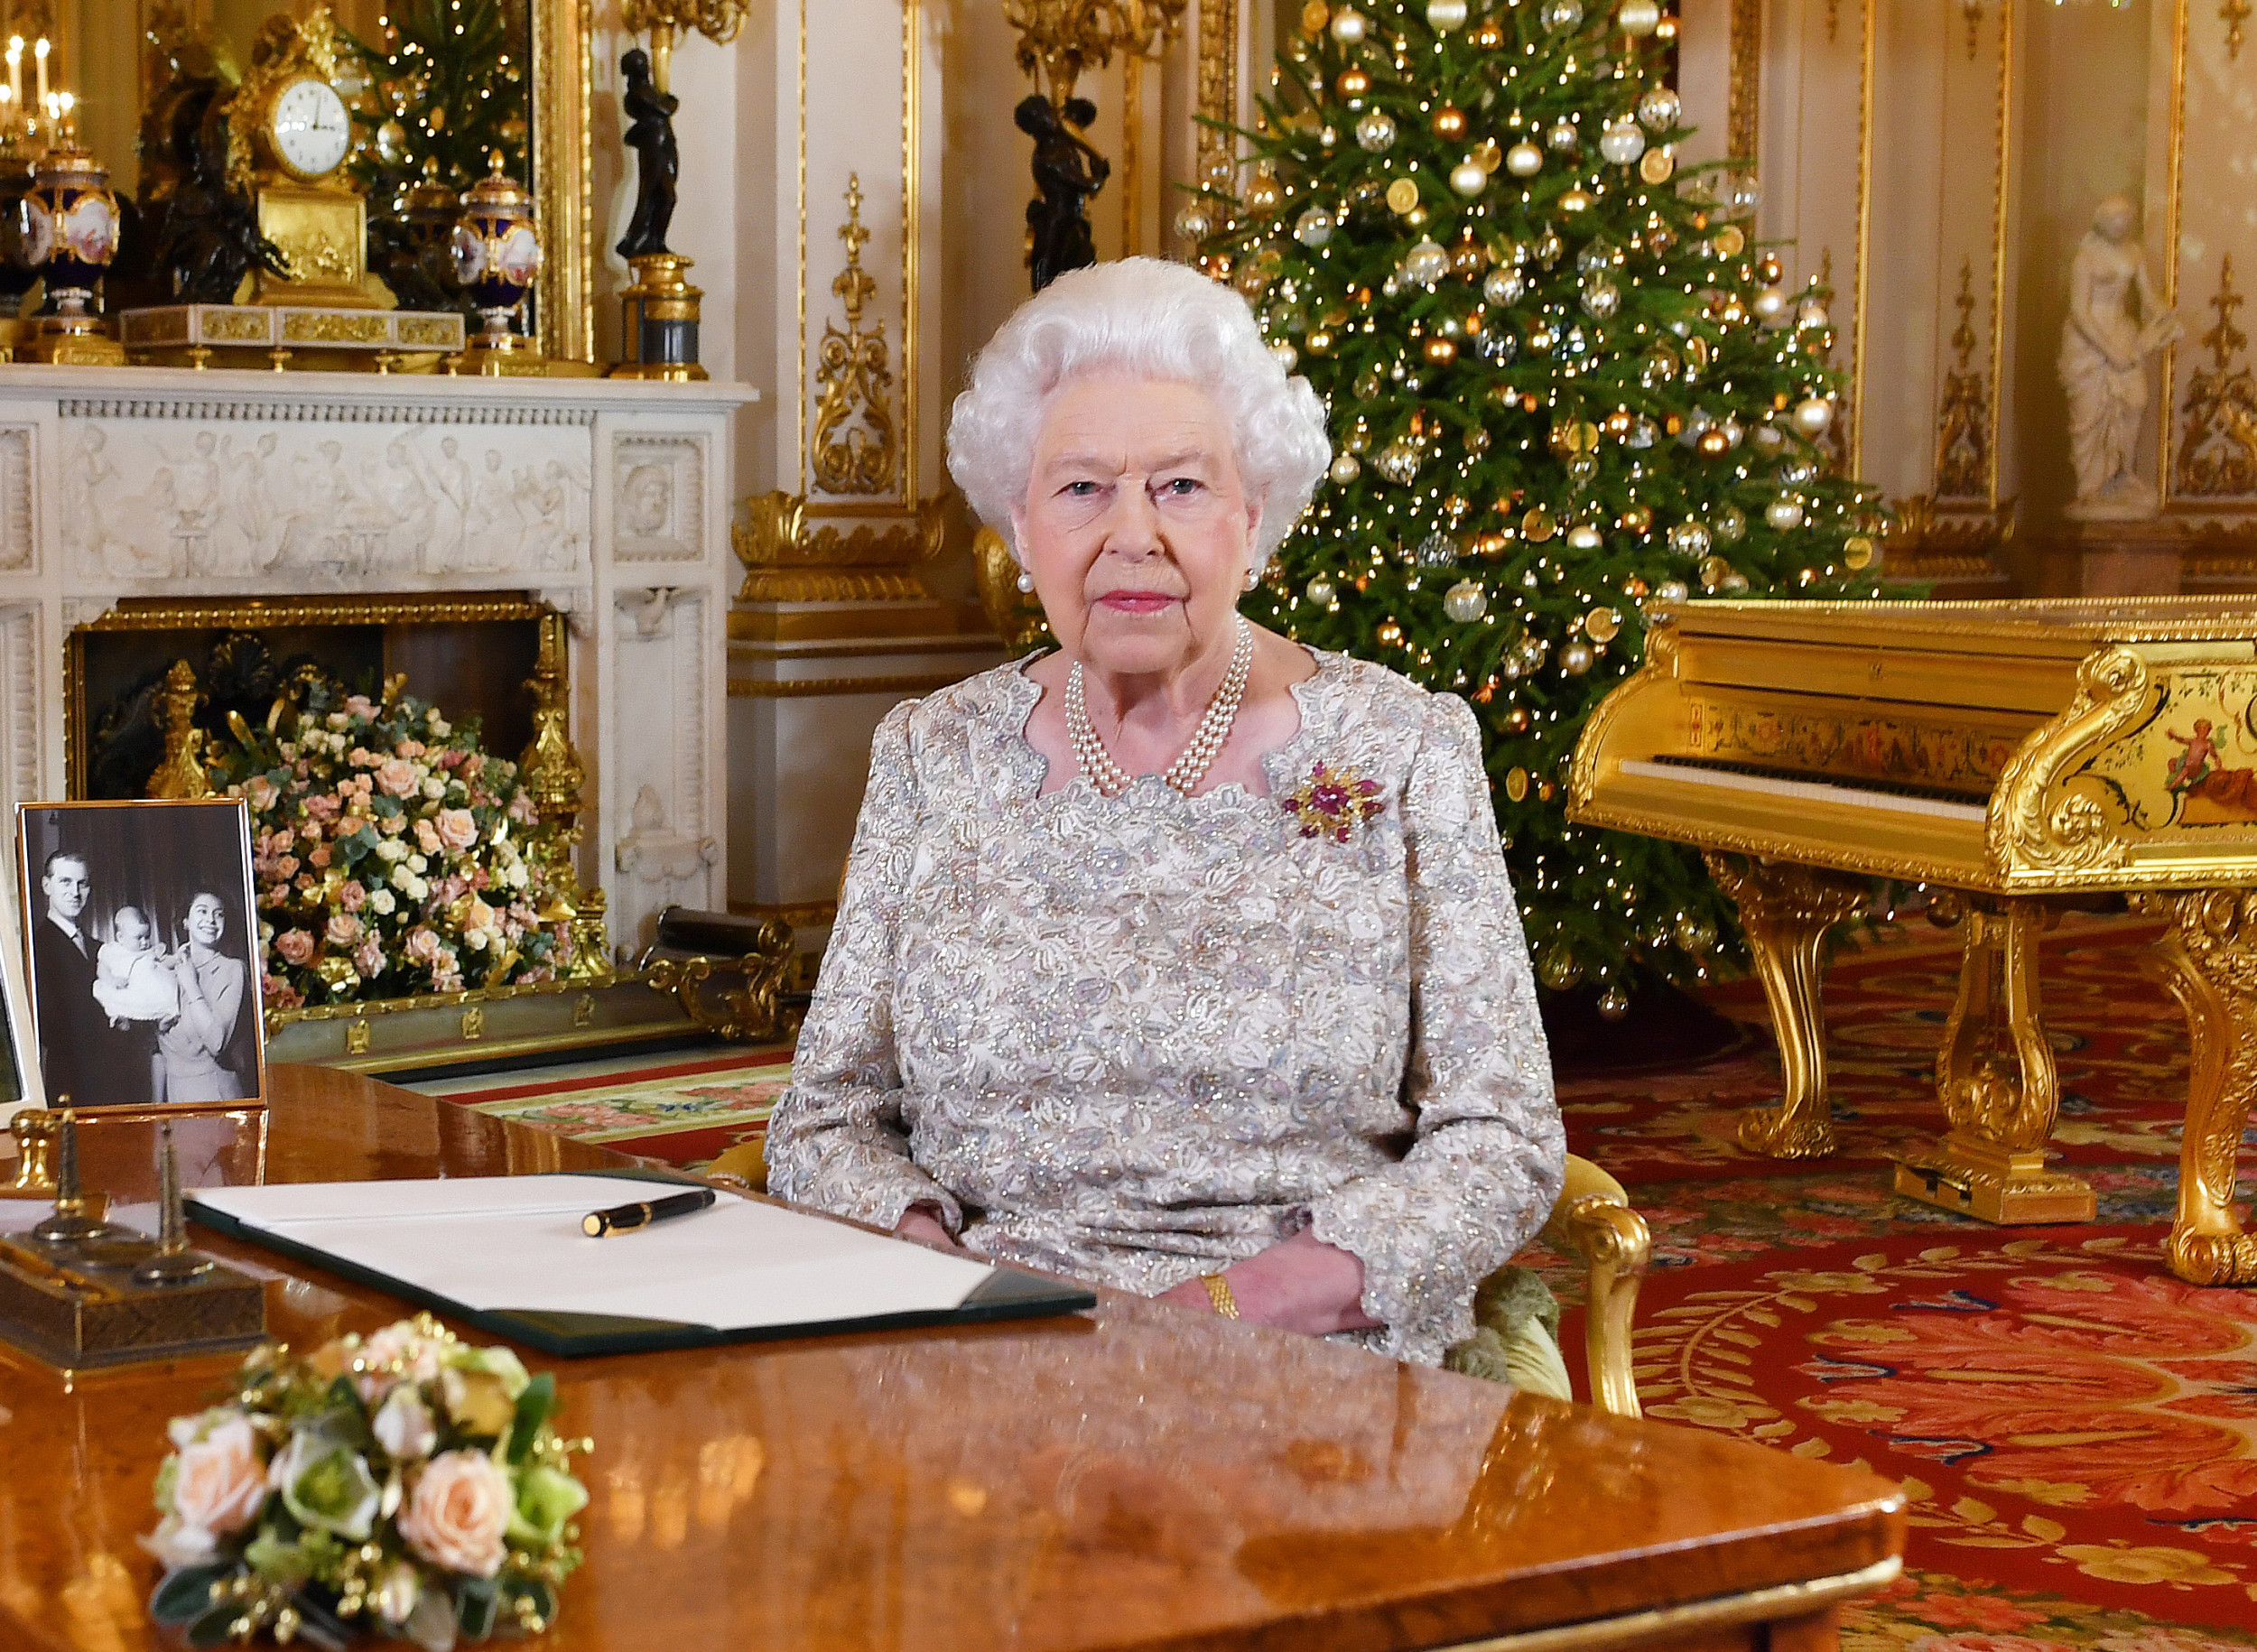 Queens Christmas Message Stream 2020 Queen Elizabeth II Welcomes Prince Harry and Meghan Markle's Baby